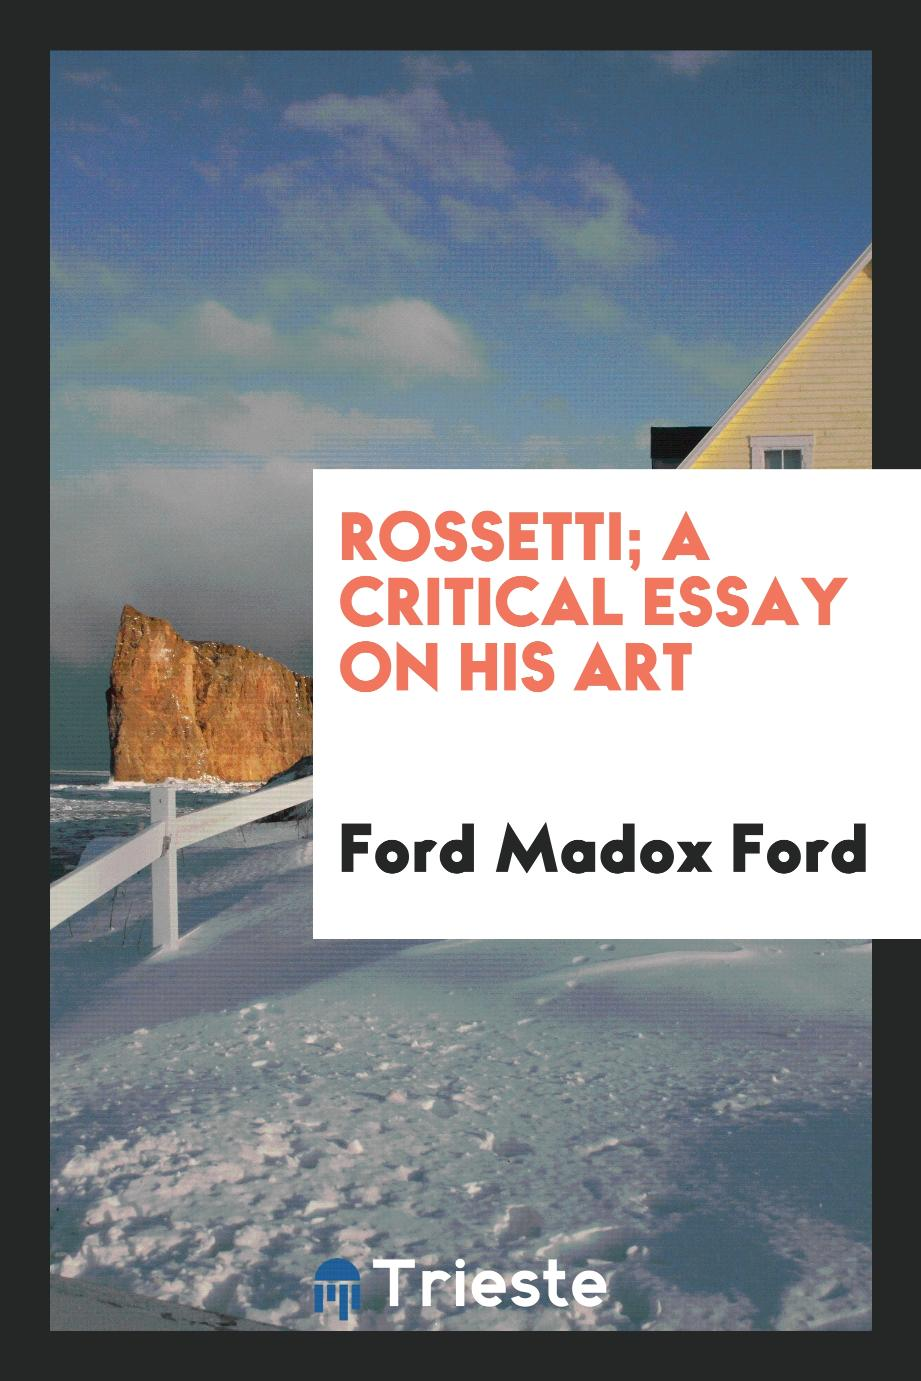 Rossetti; a critical essay on his art